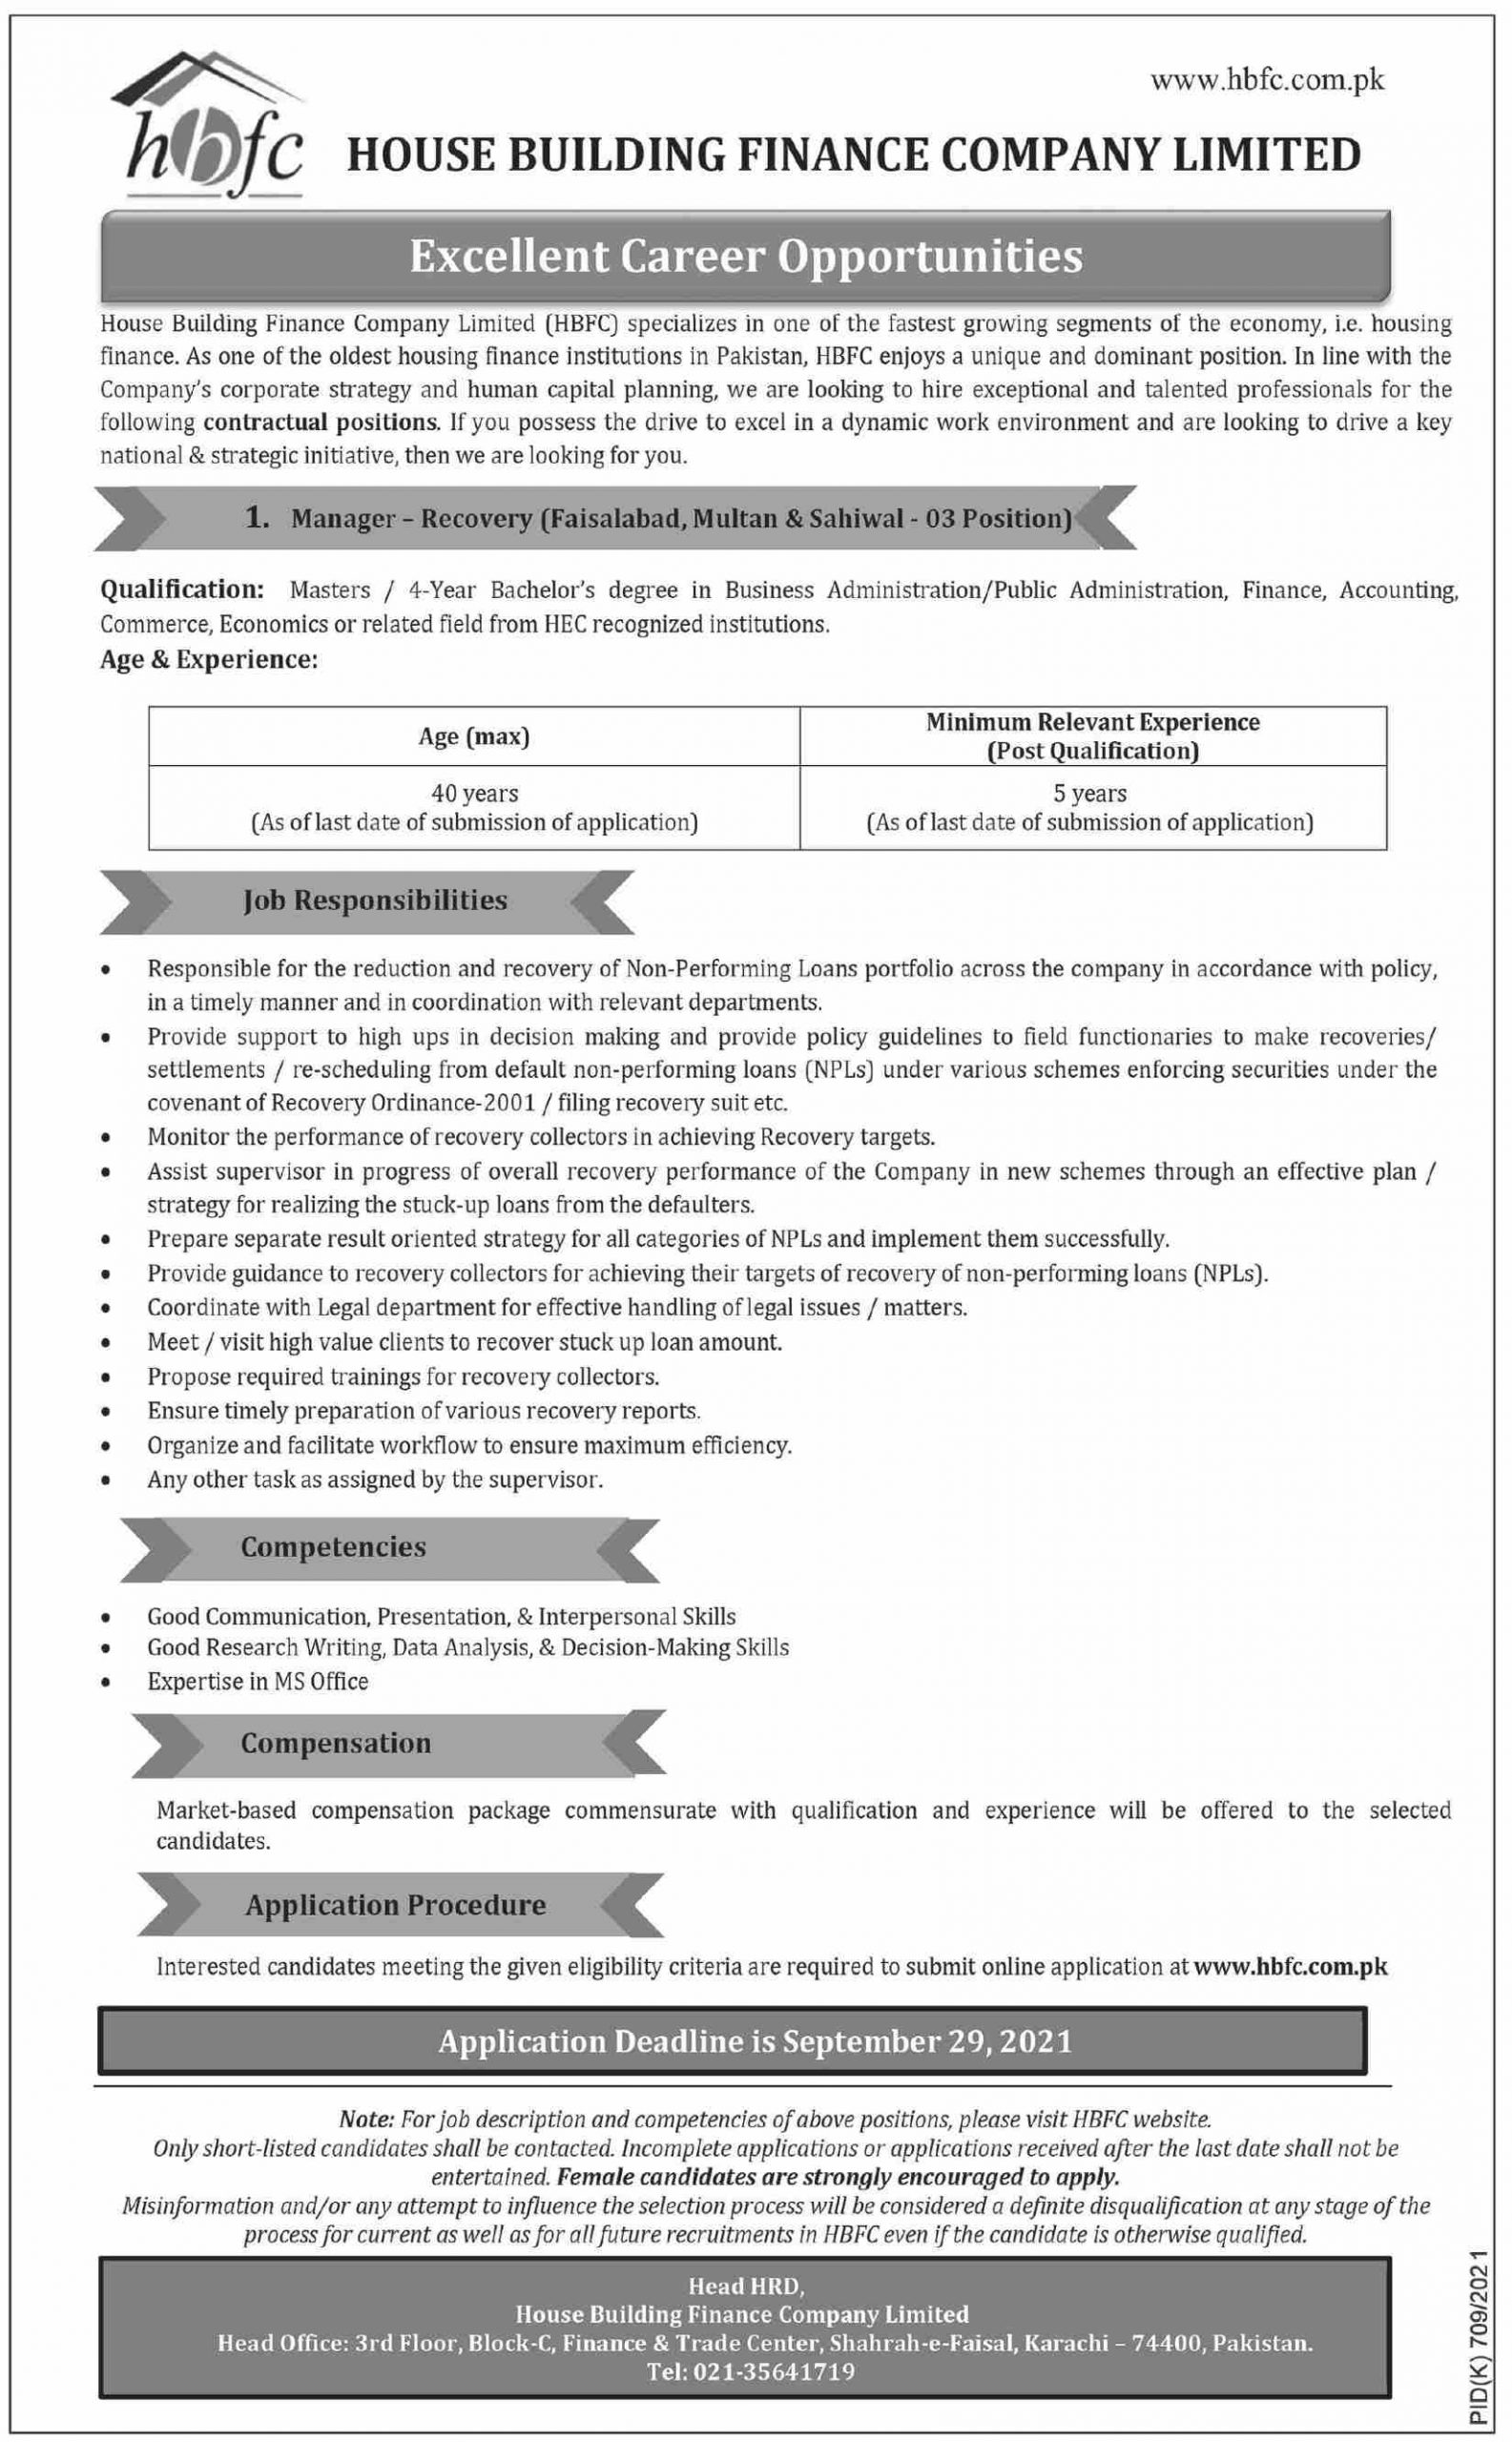 House Building Finance Company Limited Jobs September 2021